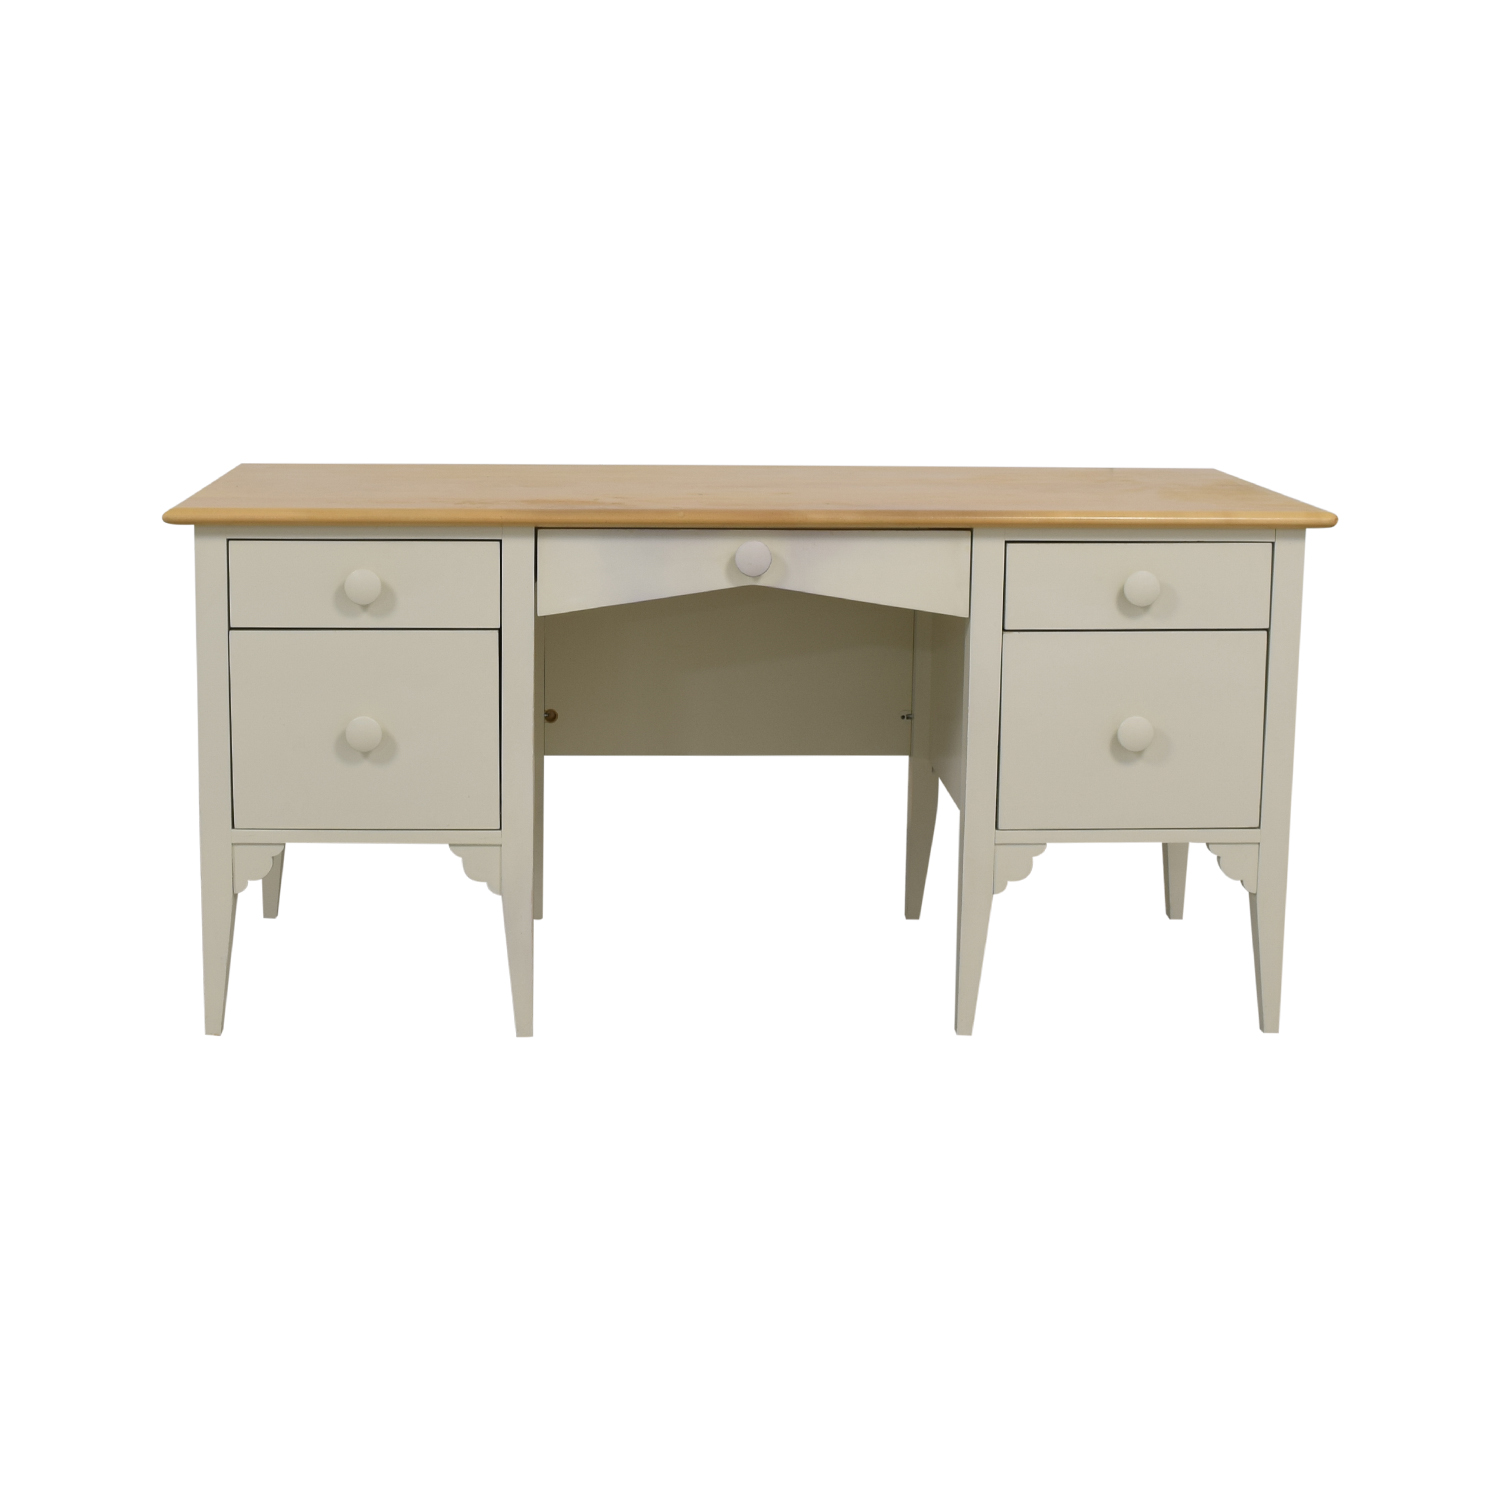 Maine Cottage Furniture Maine Cottage Furniture Big Cay White Five-Drawer Desk used